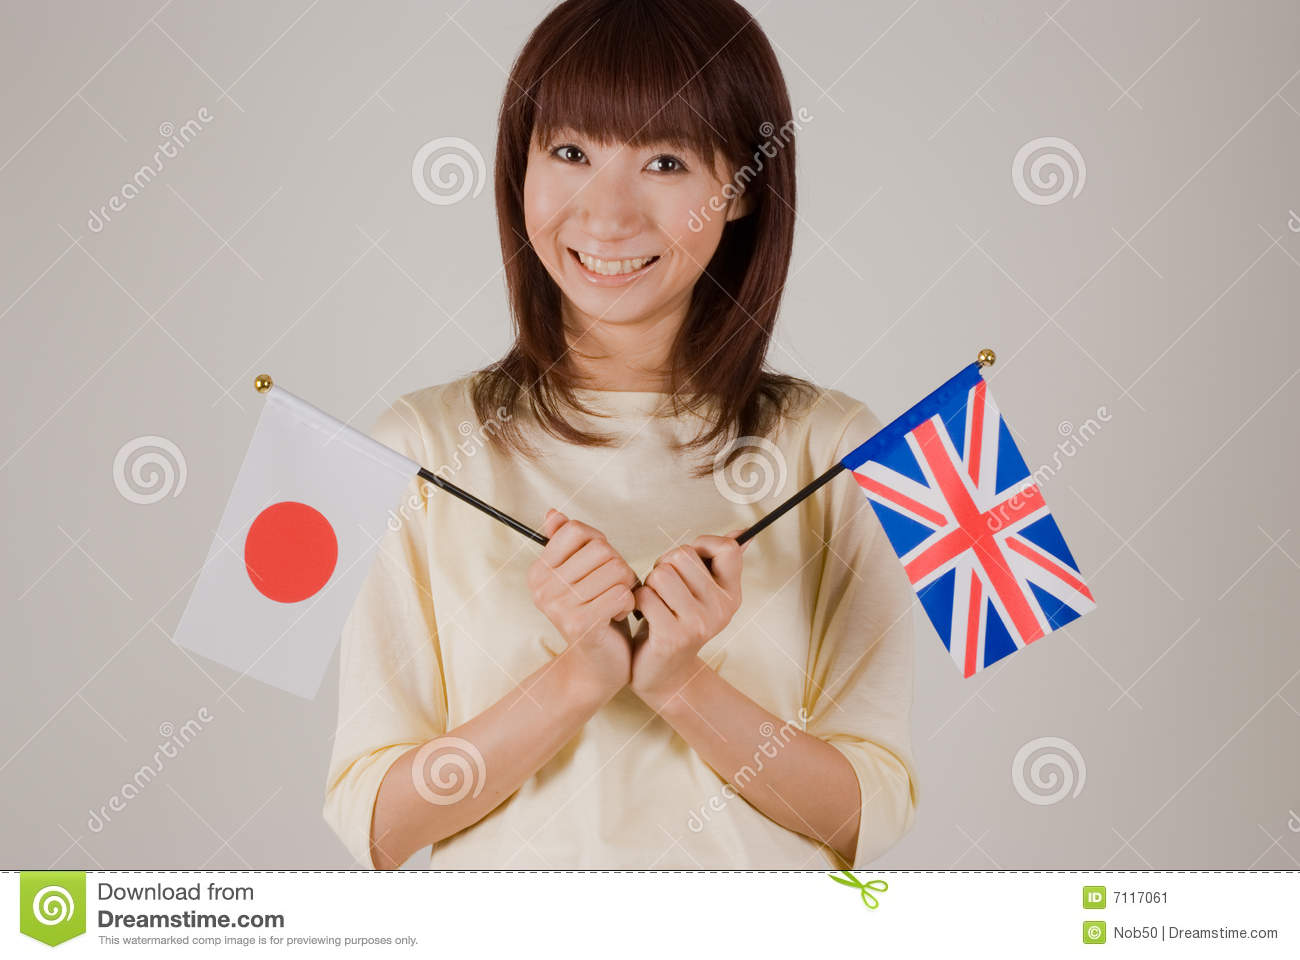 how to say british in japanese